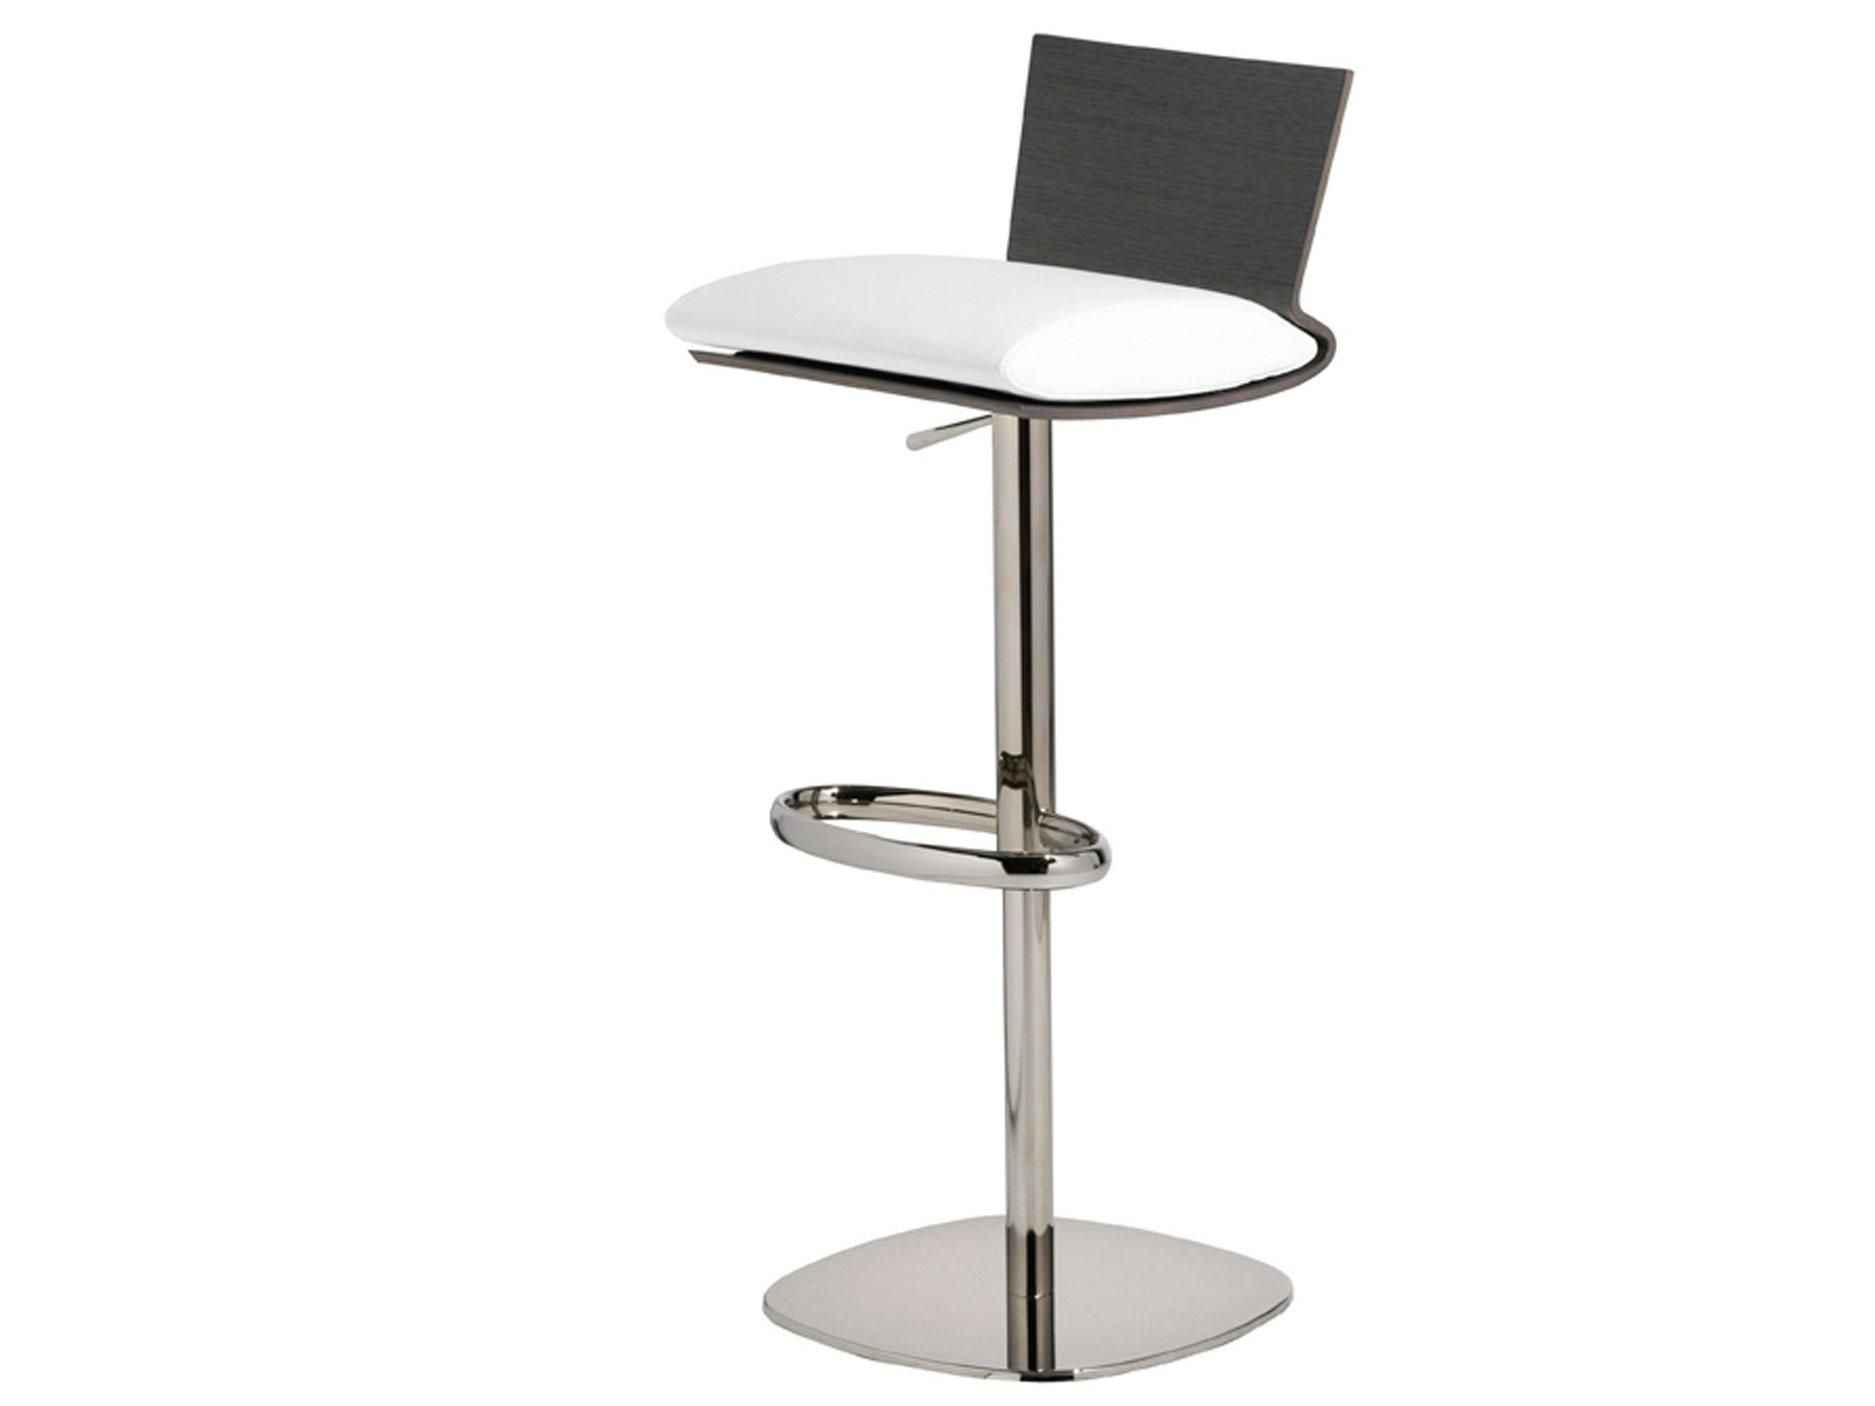 Tabouret de bar pivotant ublo collection les contemporains by roche bobois - Tabouret roche bobois ...